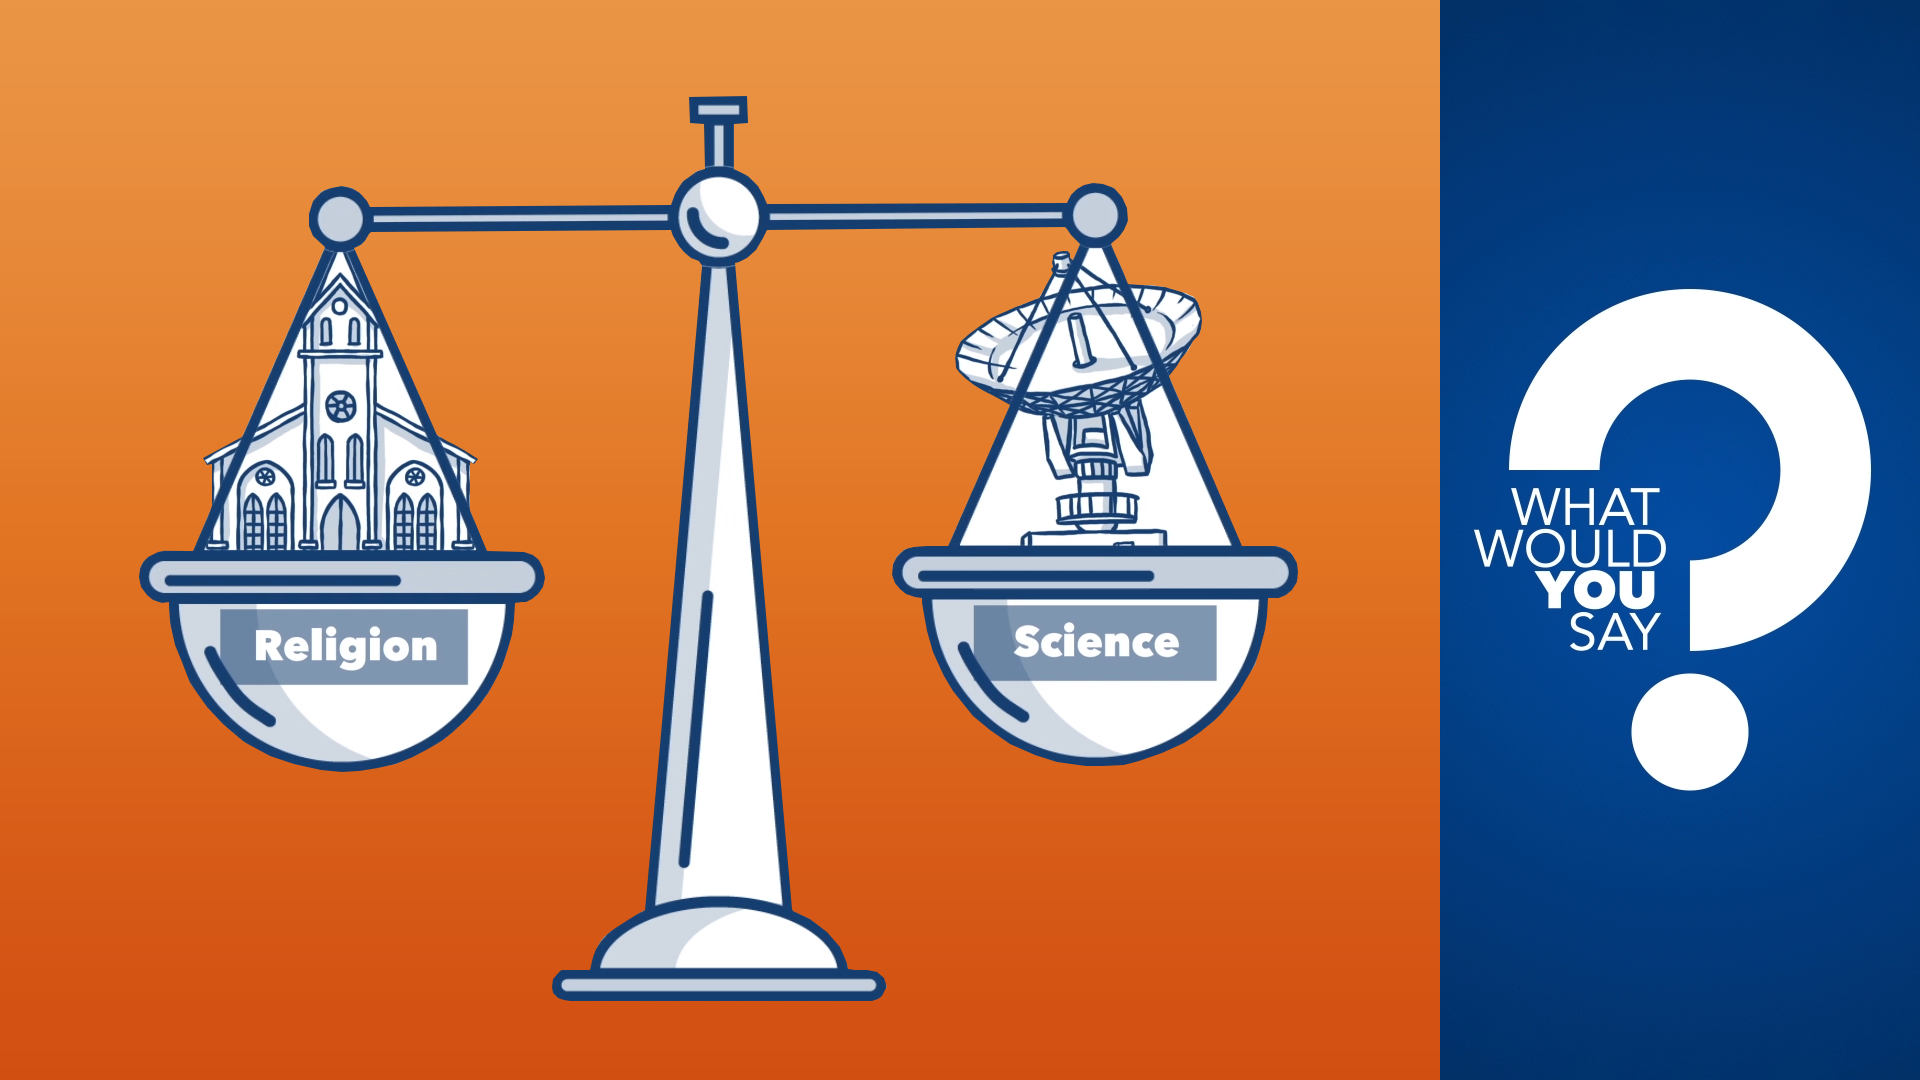 Do You Have to Choose Between Science and Religion?